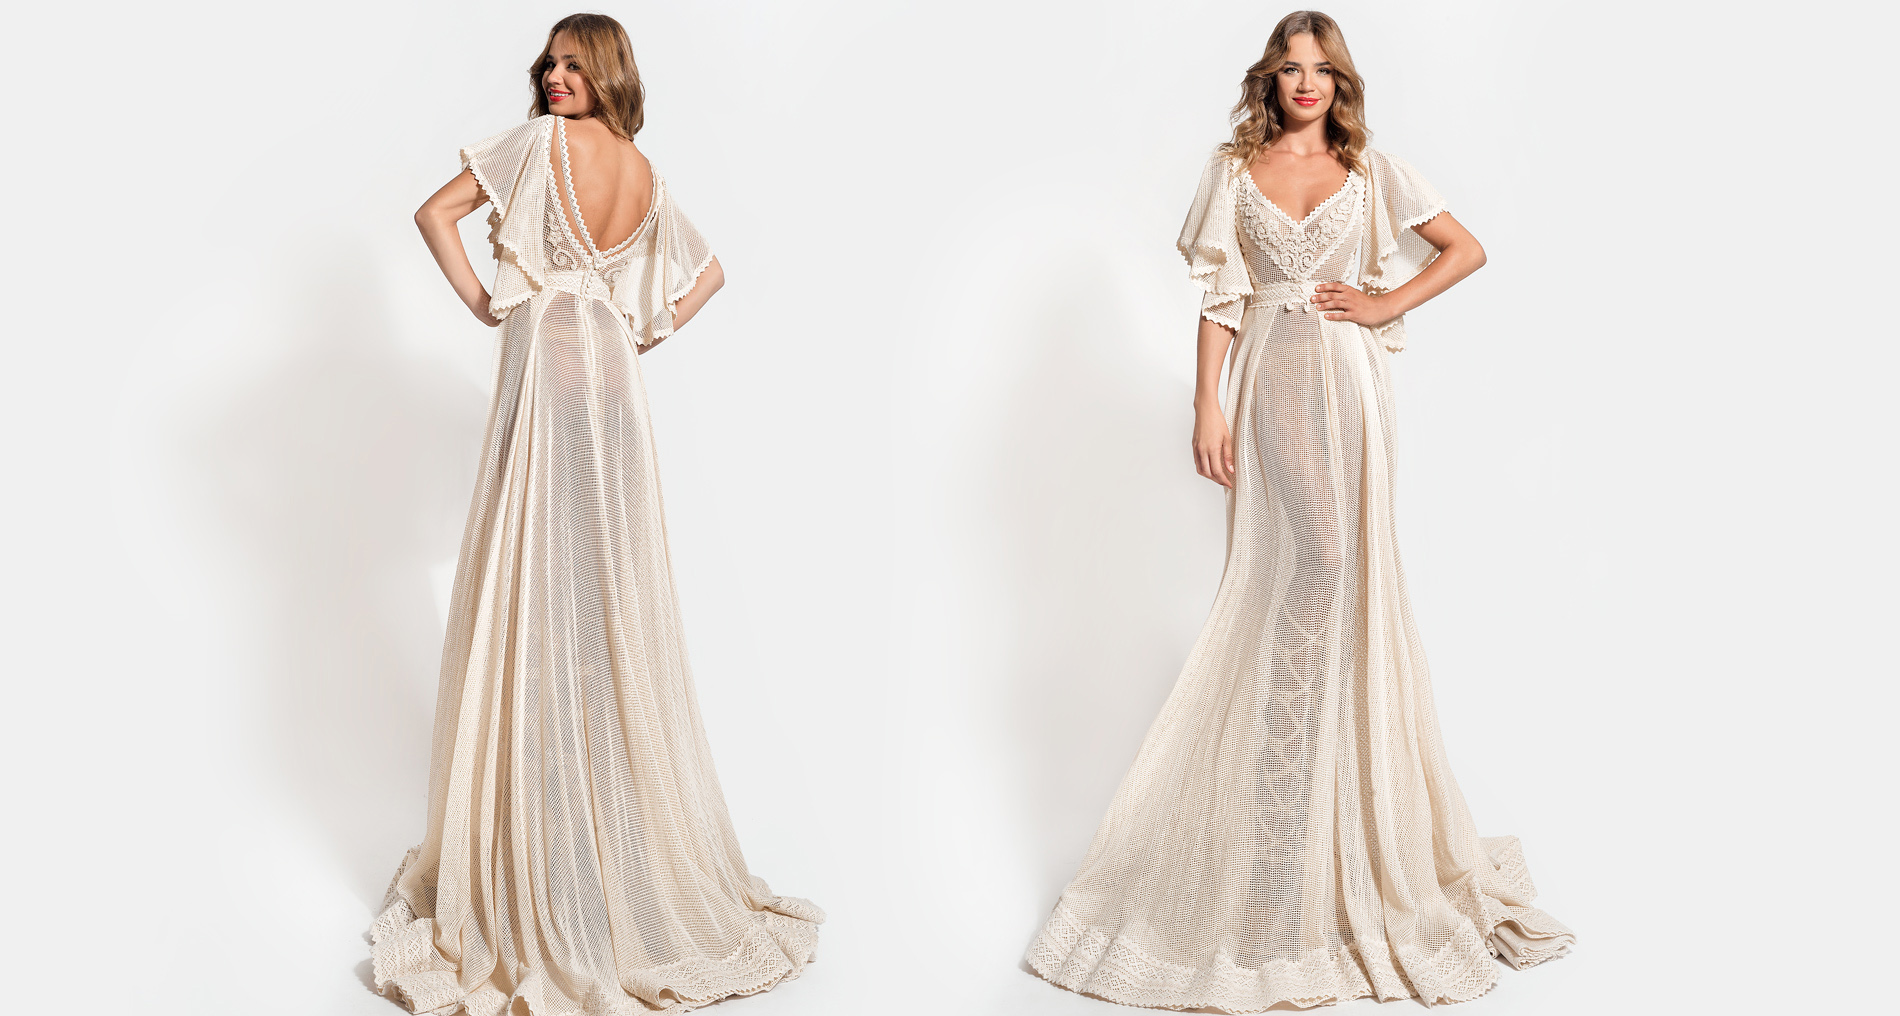 Amalthea Sleeves wedding dress from  Hellenic Vintage Essence Collection